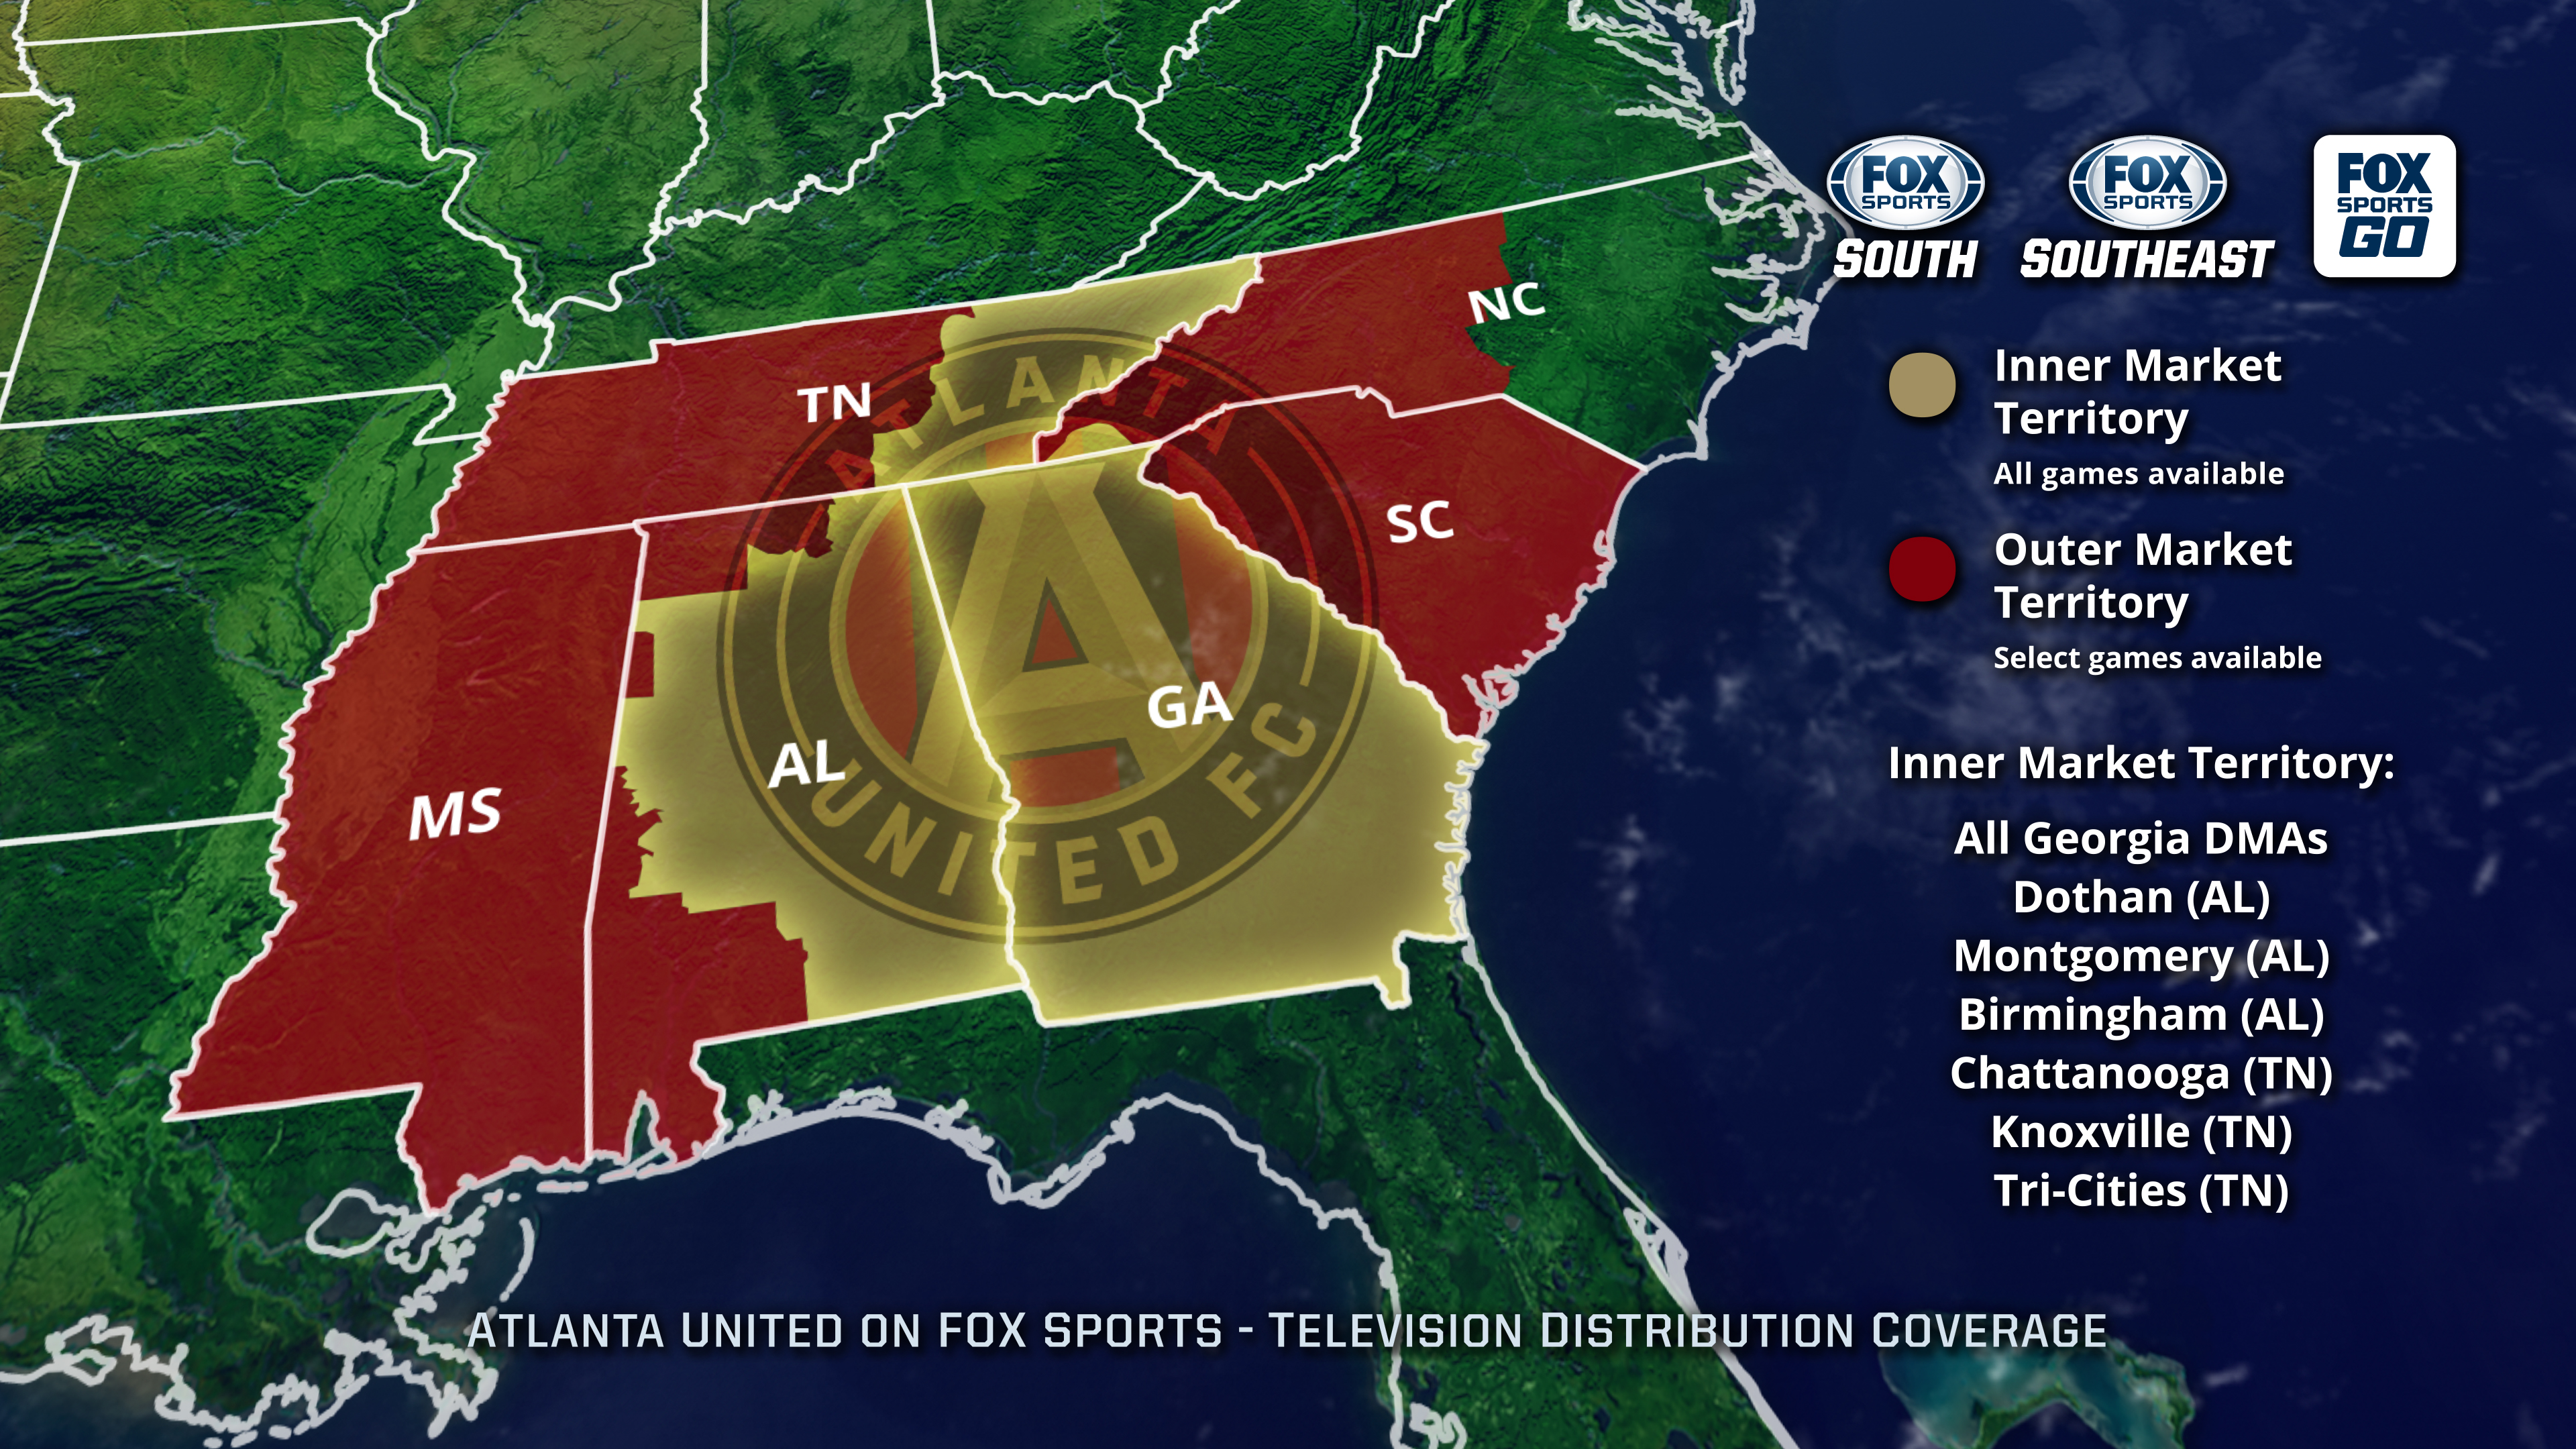 Atlanta United Coverage Map | FOX Sports on go mobile coverage map, go phone user guide, dart phone coverage map, go phone phones,